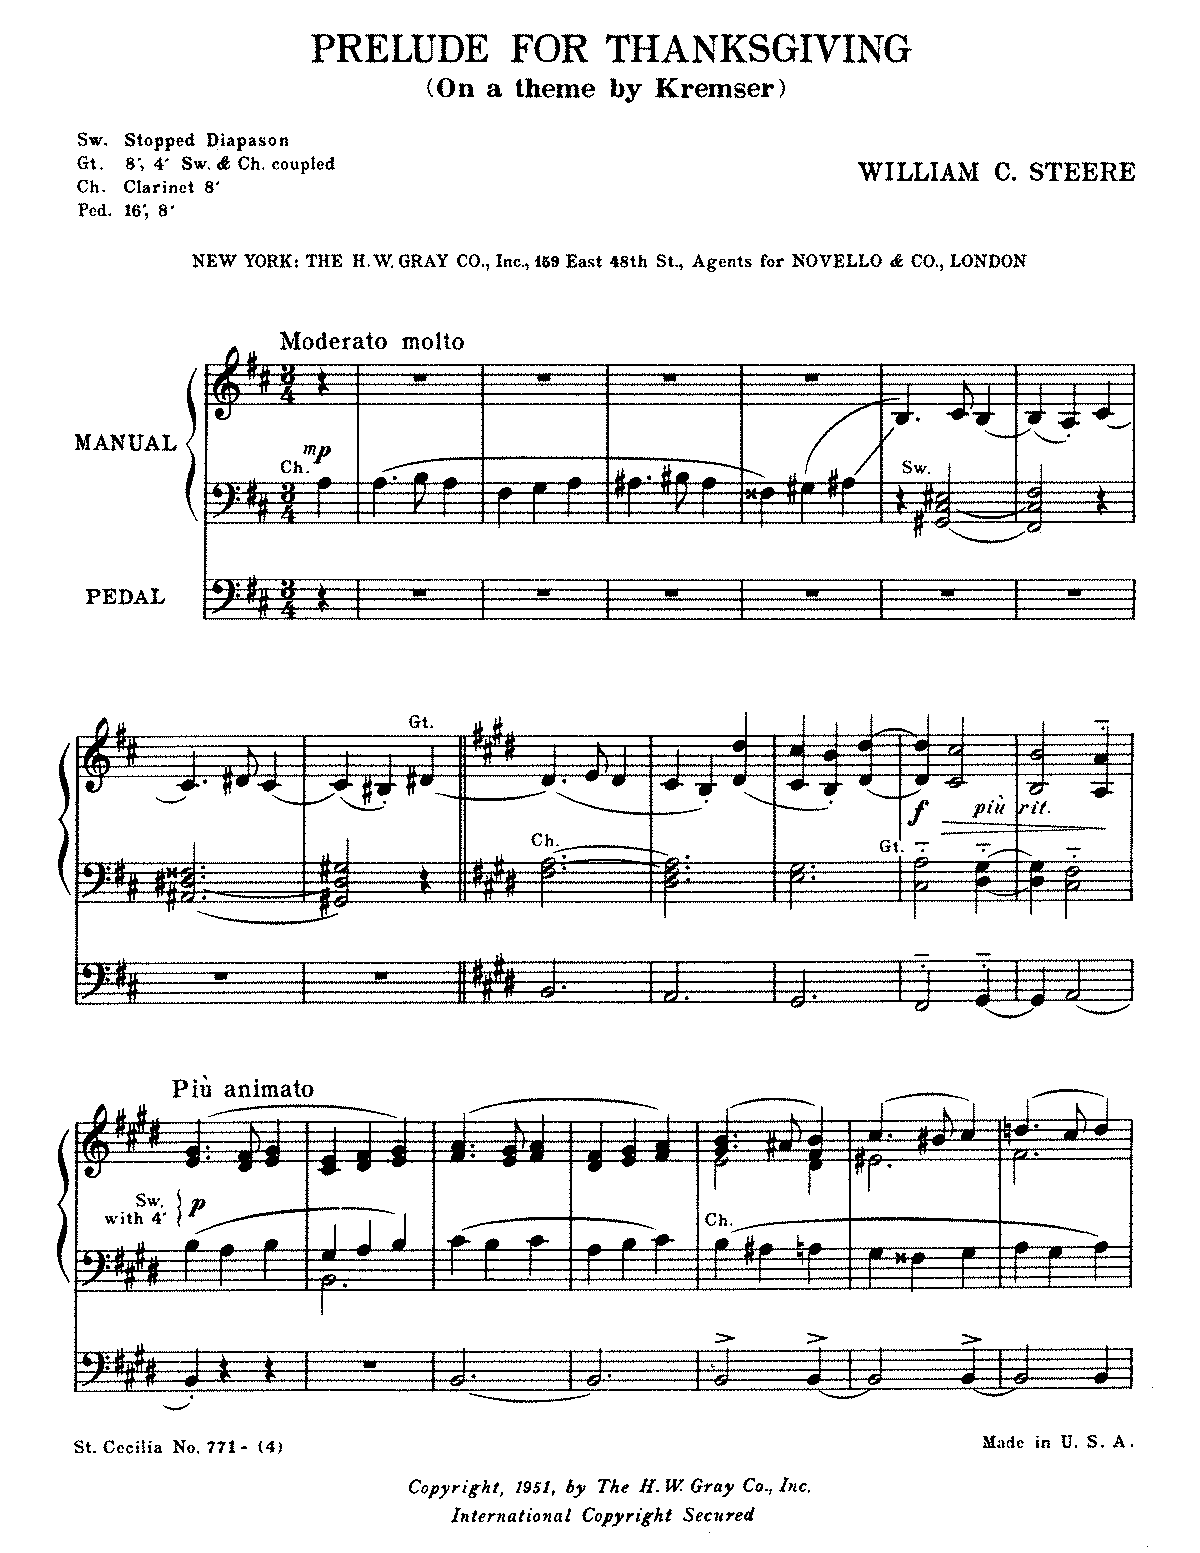 PMLP564735-Steere Prelude for Thanksgiving.pdf